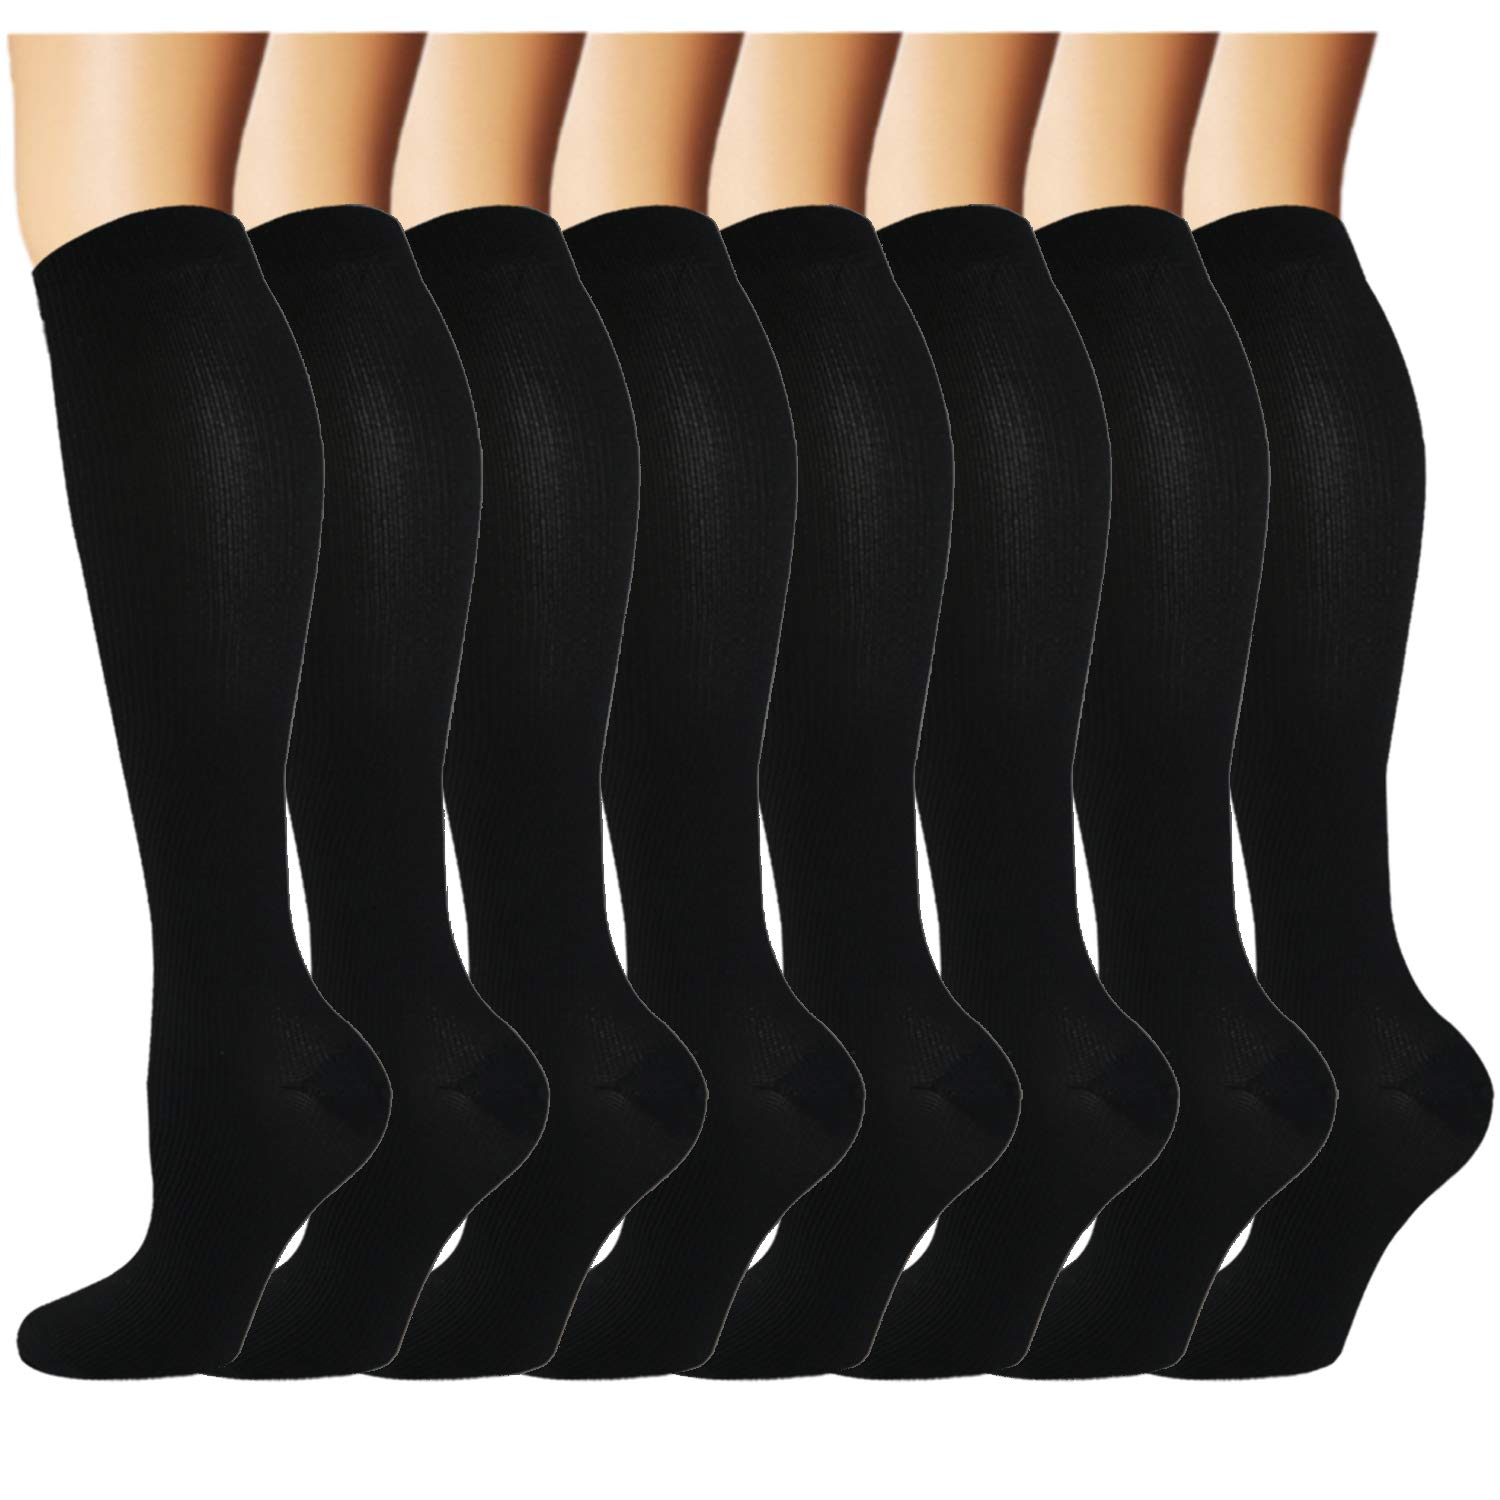 Iseasoo 8 Pack Knee High Compression Socks for Men & Women-Best for Running,Athletic,Medical,Pregnancy and Travel -15-20mmHg (L/XL, 8 Pairs Black) by Iseasoo